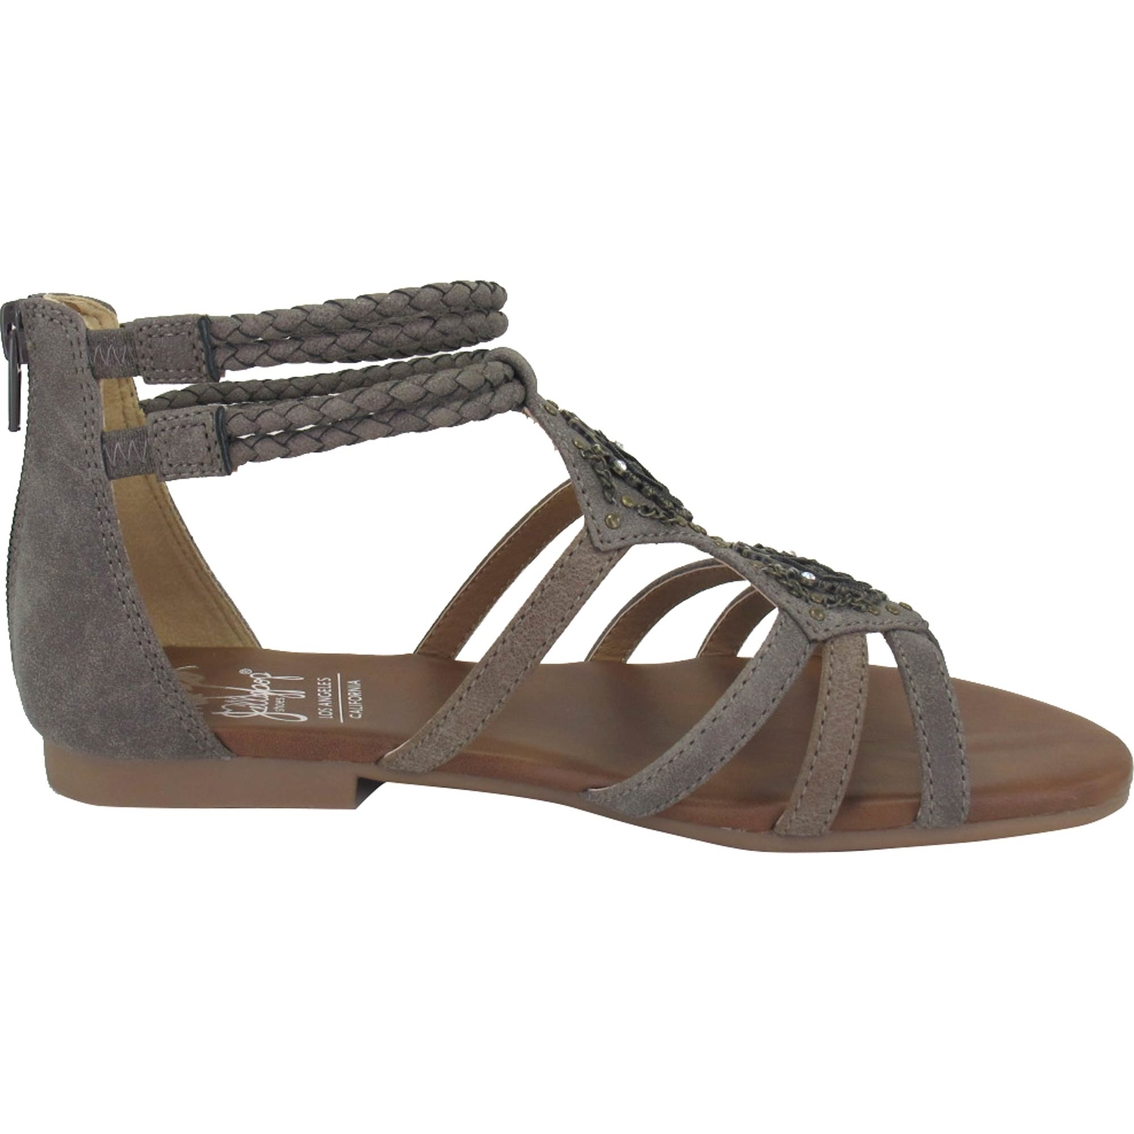 f27b6643e Jellypop Inza Gladiator Sandals